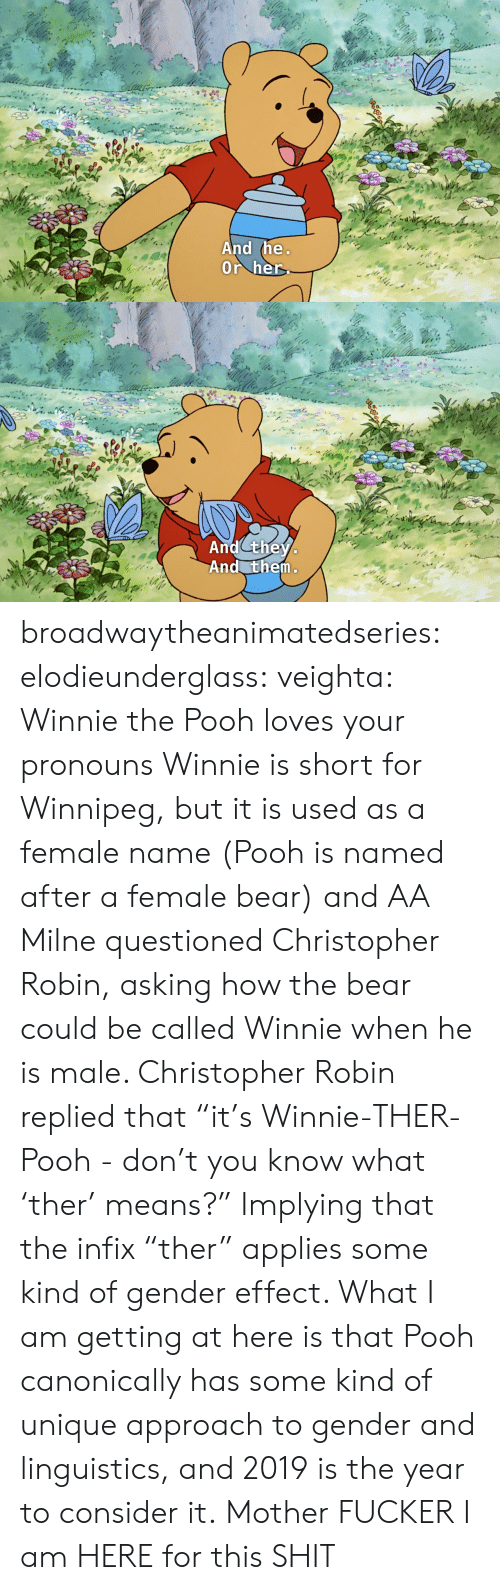 "I Am Here: And the  Or her   And they  And them broadwaytheanimatedseries: elodieunderglass:  veighta: Winnie the Pooh loves your pronouns  Winnie is short for Winnipeg, but it is used as a female name (Pooh is named after a female bear) and AA Milne questioned Christopher Robin, asking how the bear could be called Winnie when he is male. Christopher Robin replied that ""it's Winnie-THER-Pooh - don't you know what 'ther' means?"" Implying that the infix ""ther"" applies some kind of gender effect.  What I am getting at here is that Pooh canonically has some kind of unique approach to gender and linguistics, and 2019 is the year to consider it.   Mother FUCKER I am HERE for this SHIT"